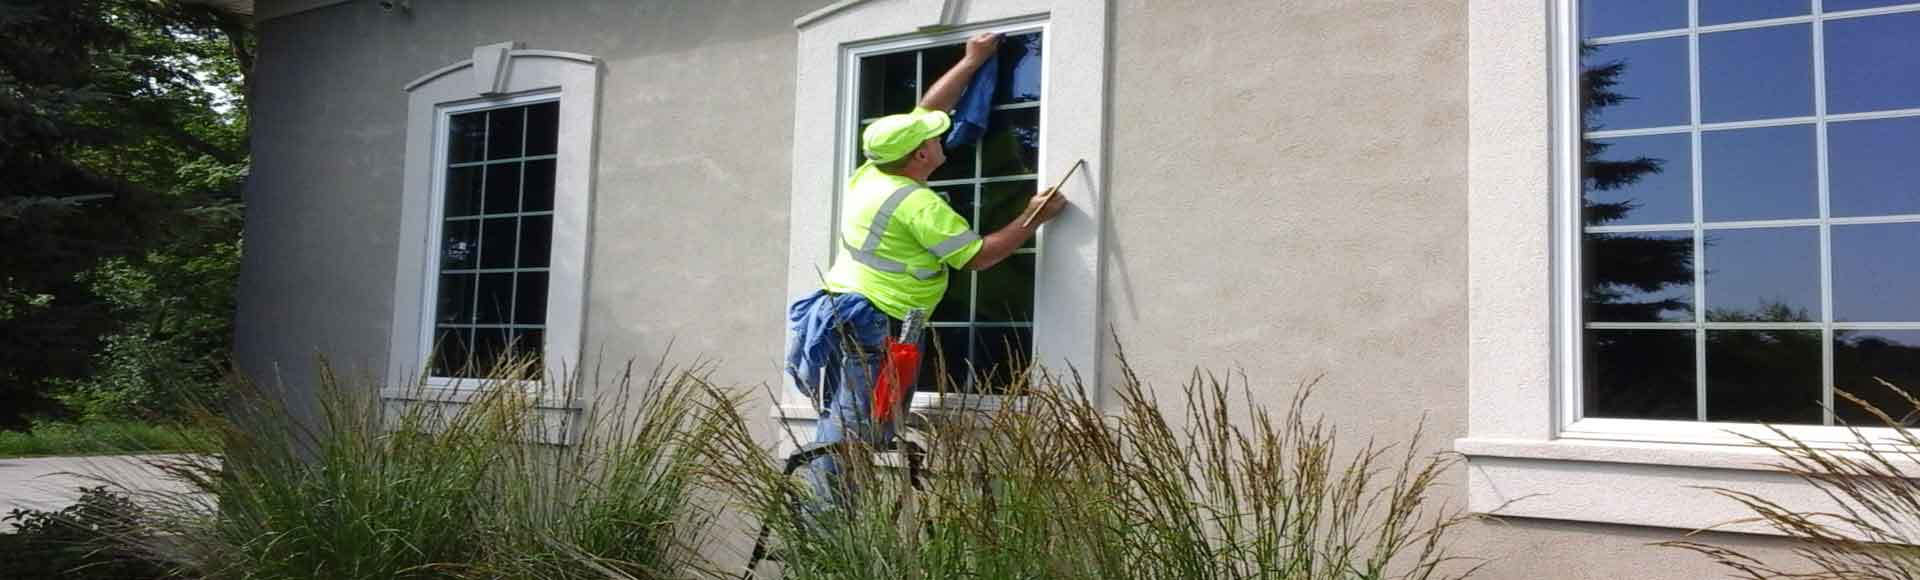 Window Cleaning Homes Services